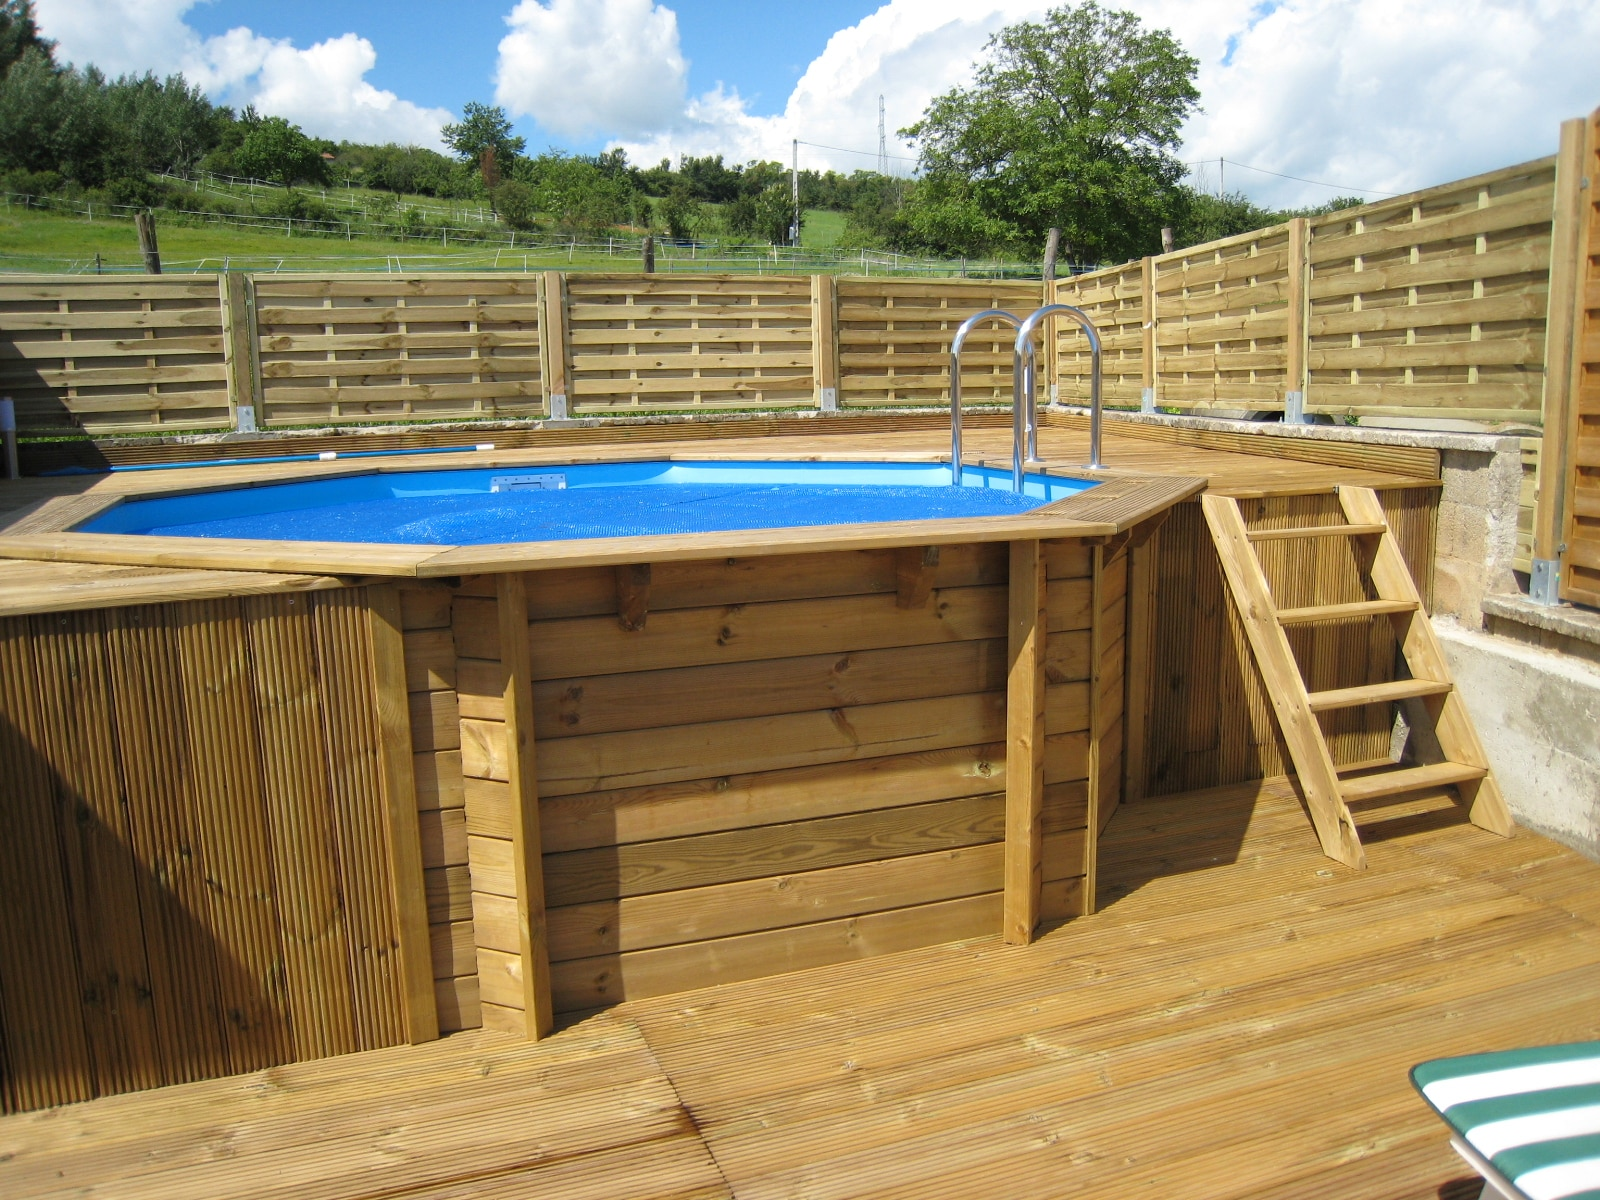 Comment faire une terrasse en bois piscine for Conception de piscine